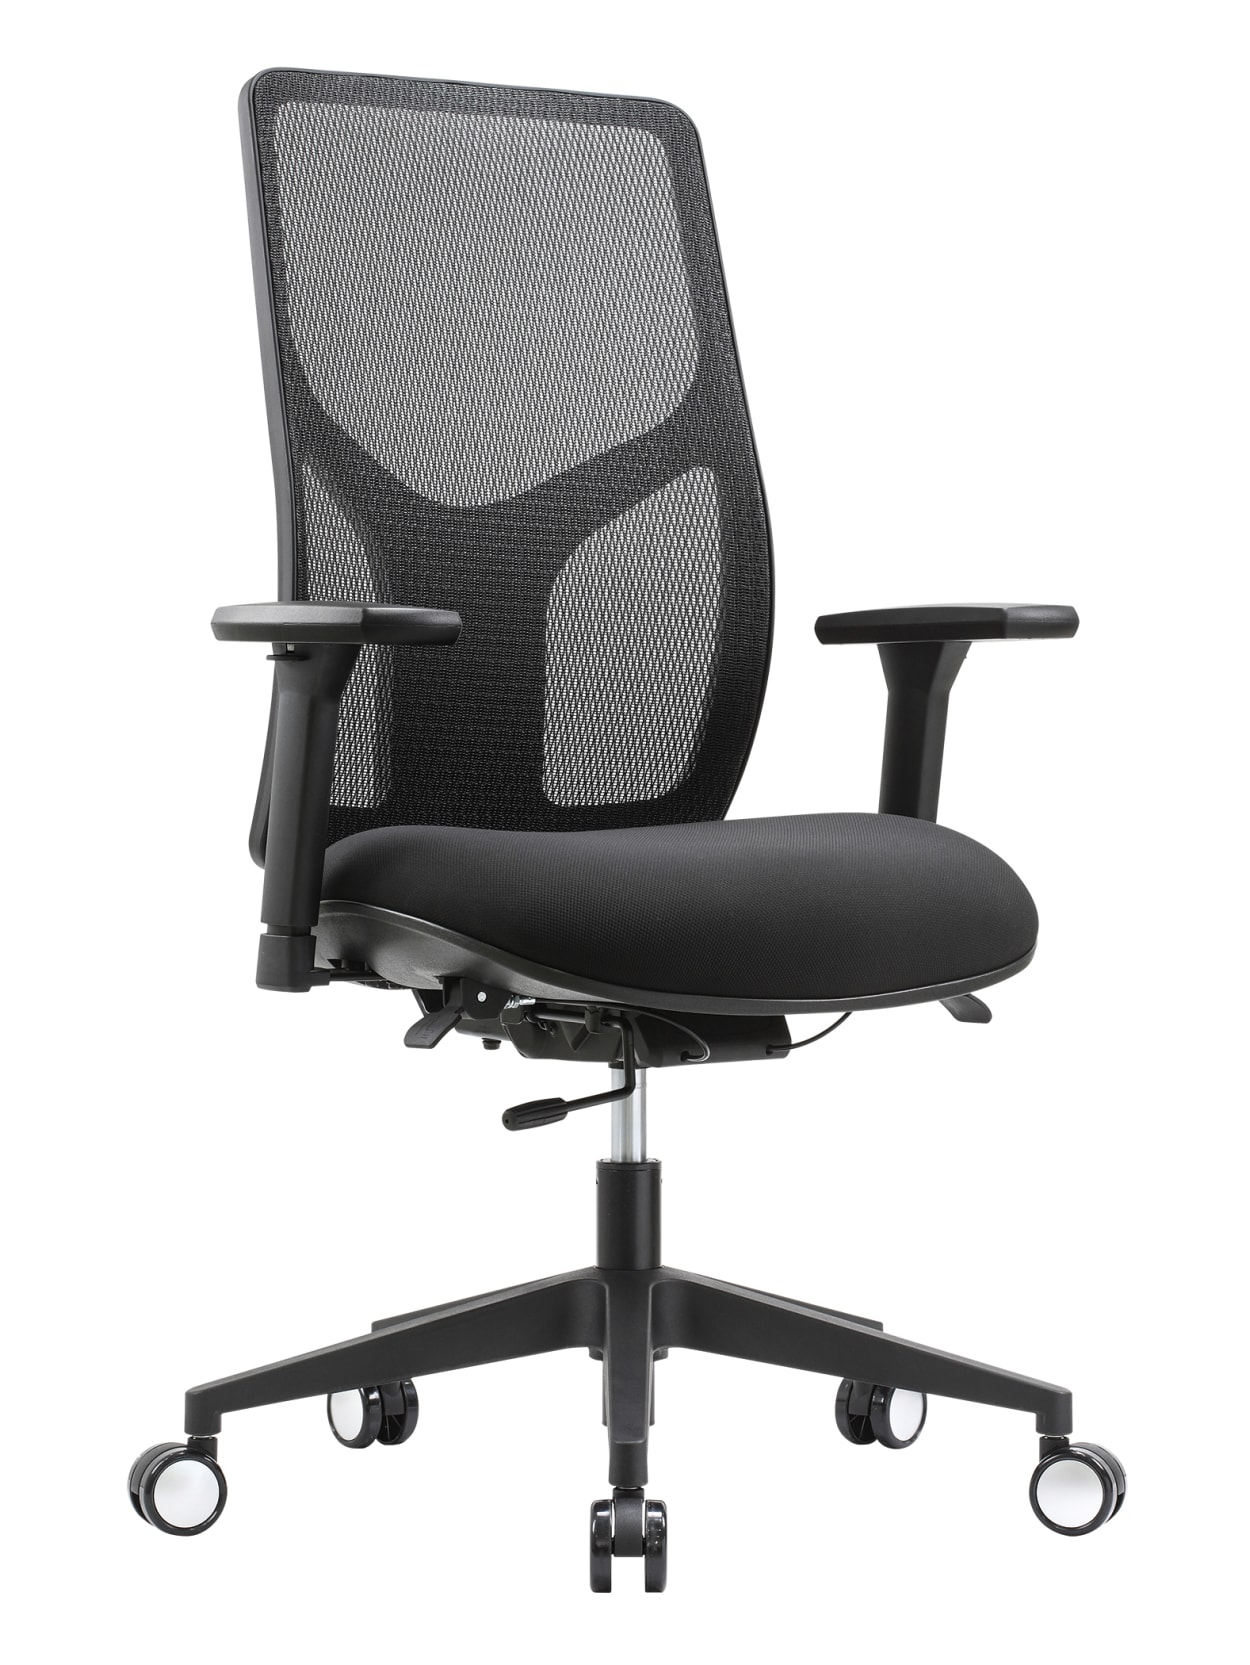 Workpro 4000 Multifunction Chair Black Office Depot